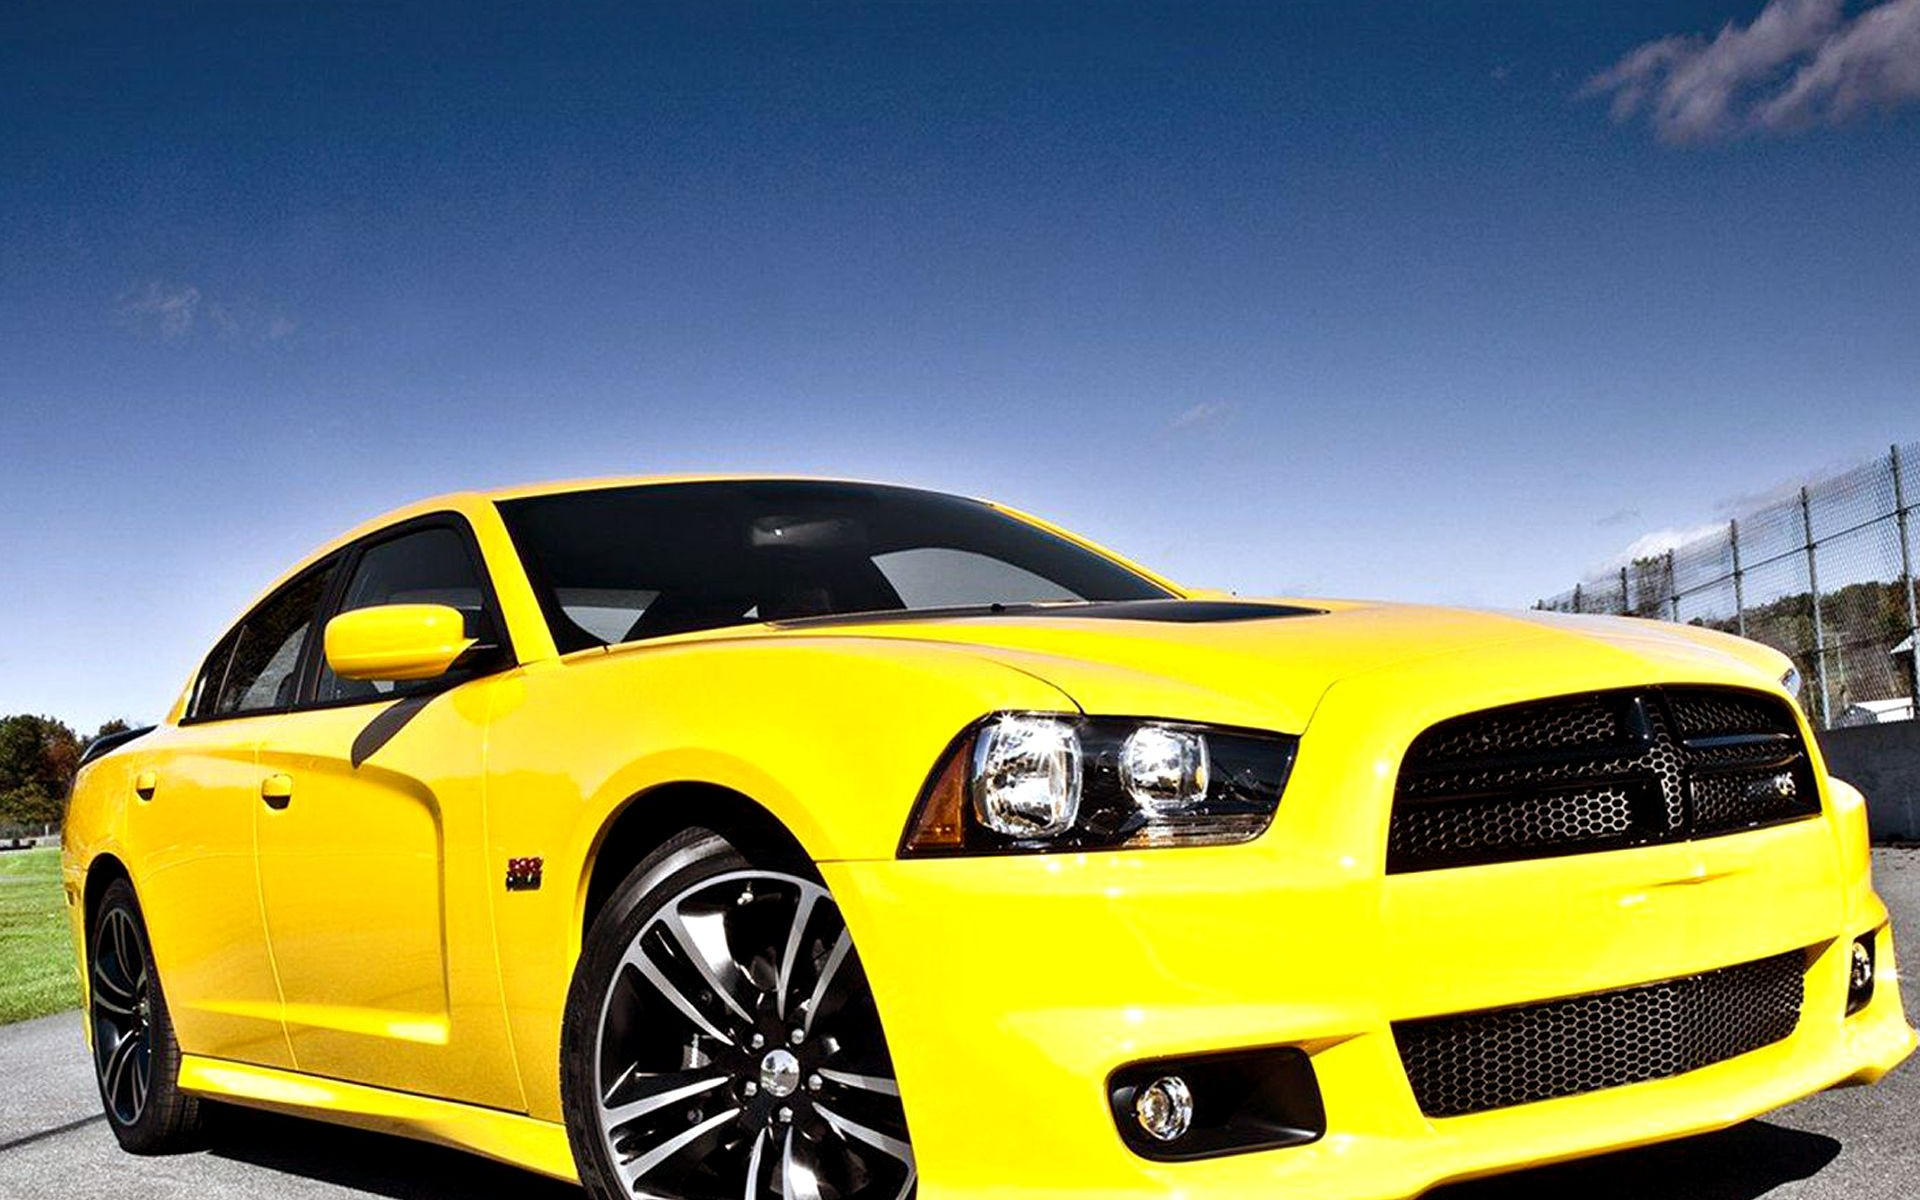 texas dodge amarillo Charger SRT8 Super Bee coche coches Mundo Wallpapers HD Wallpaper